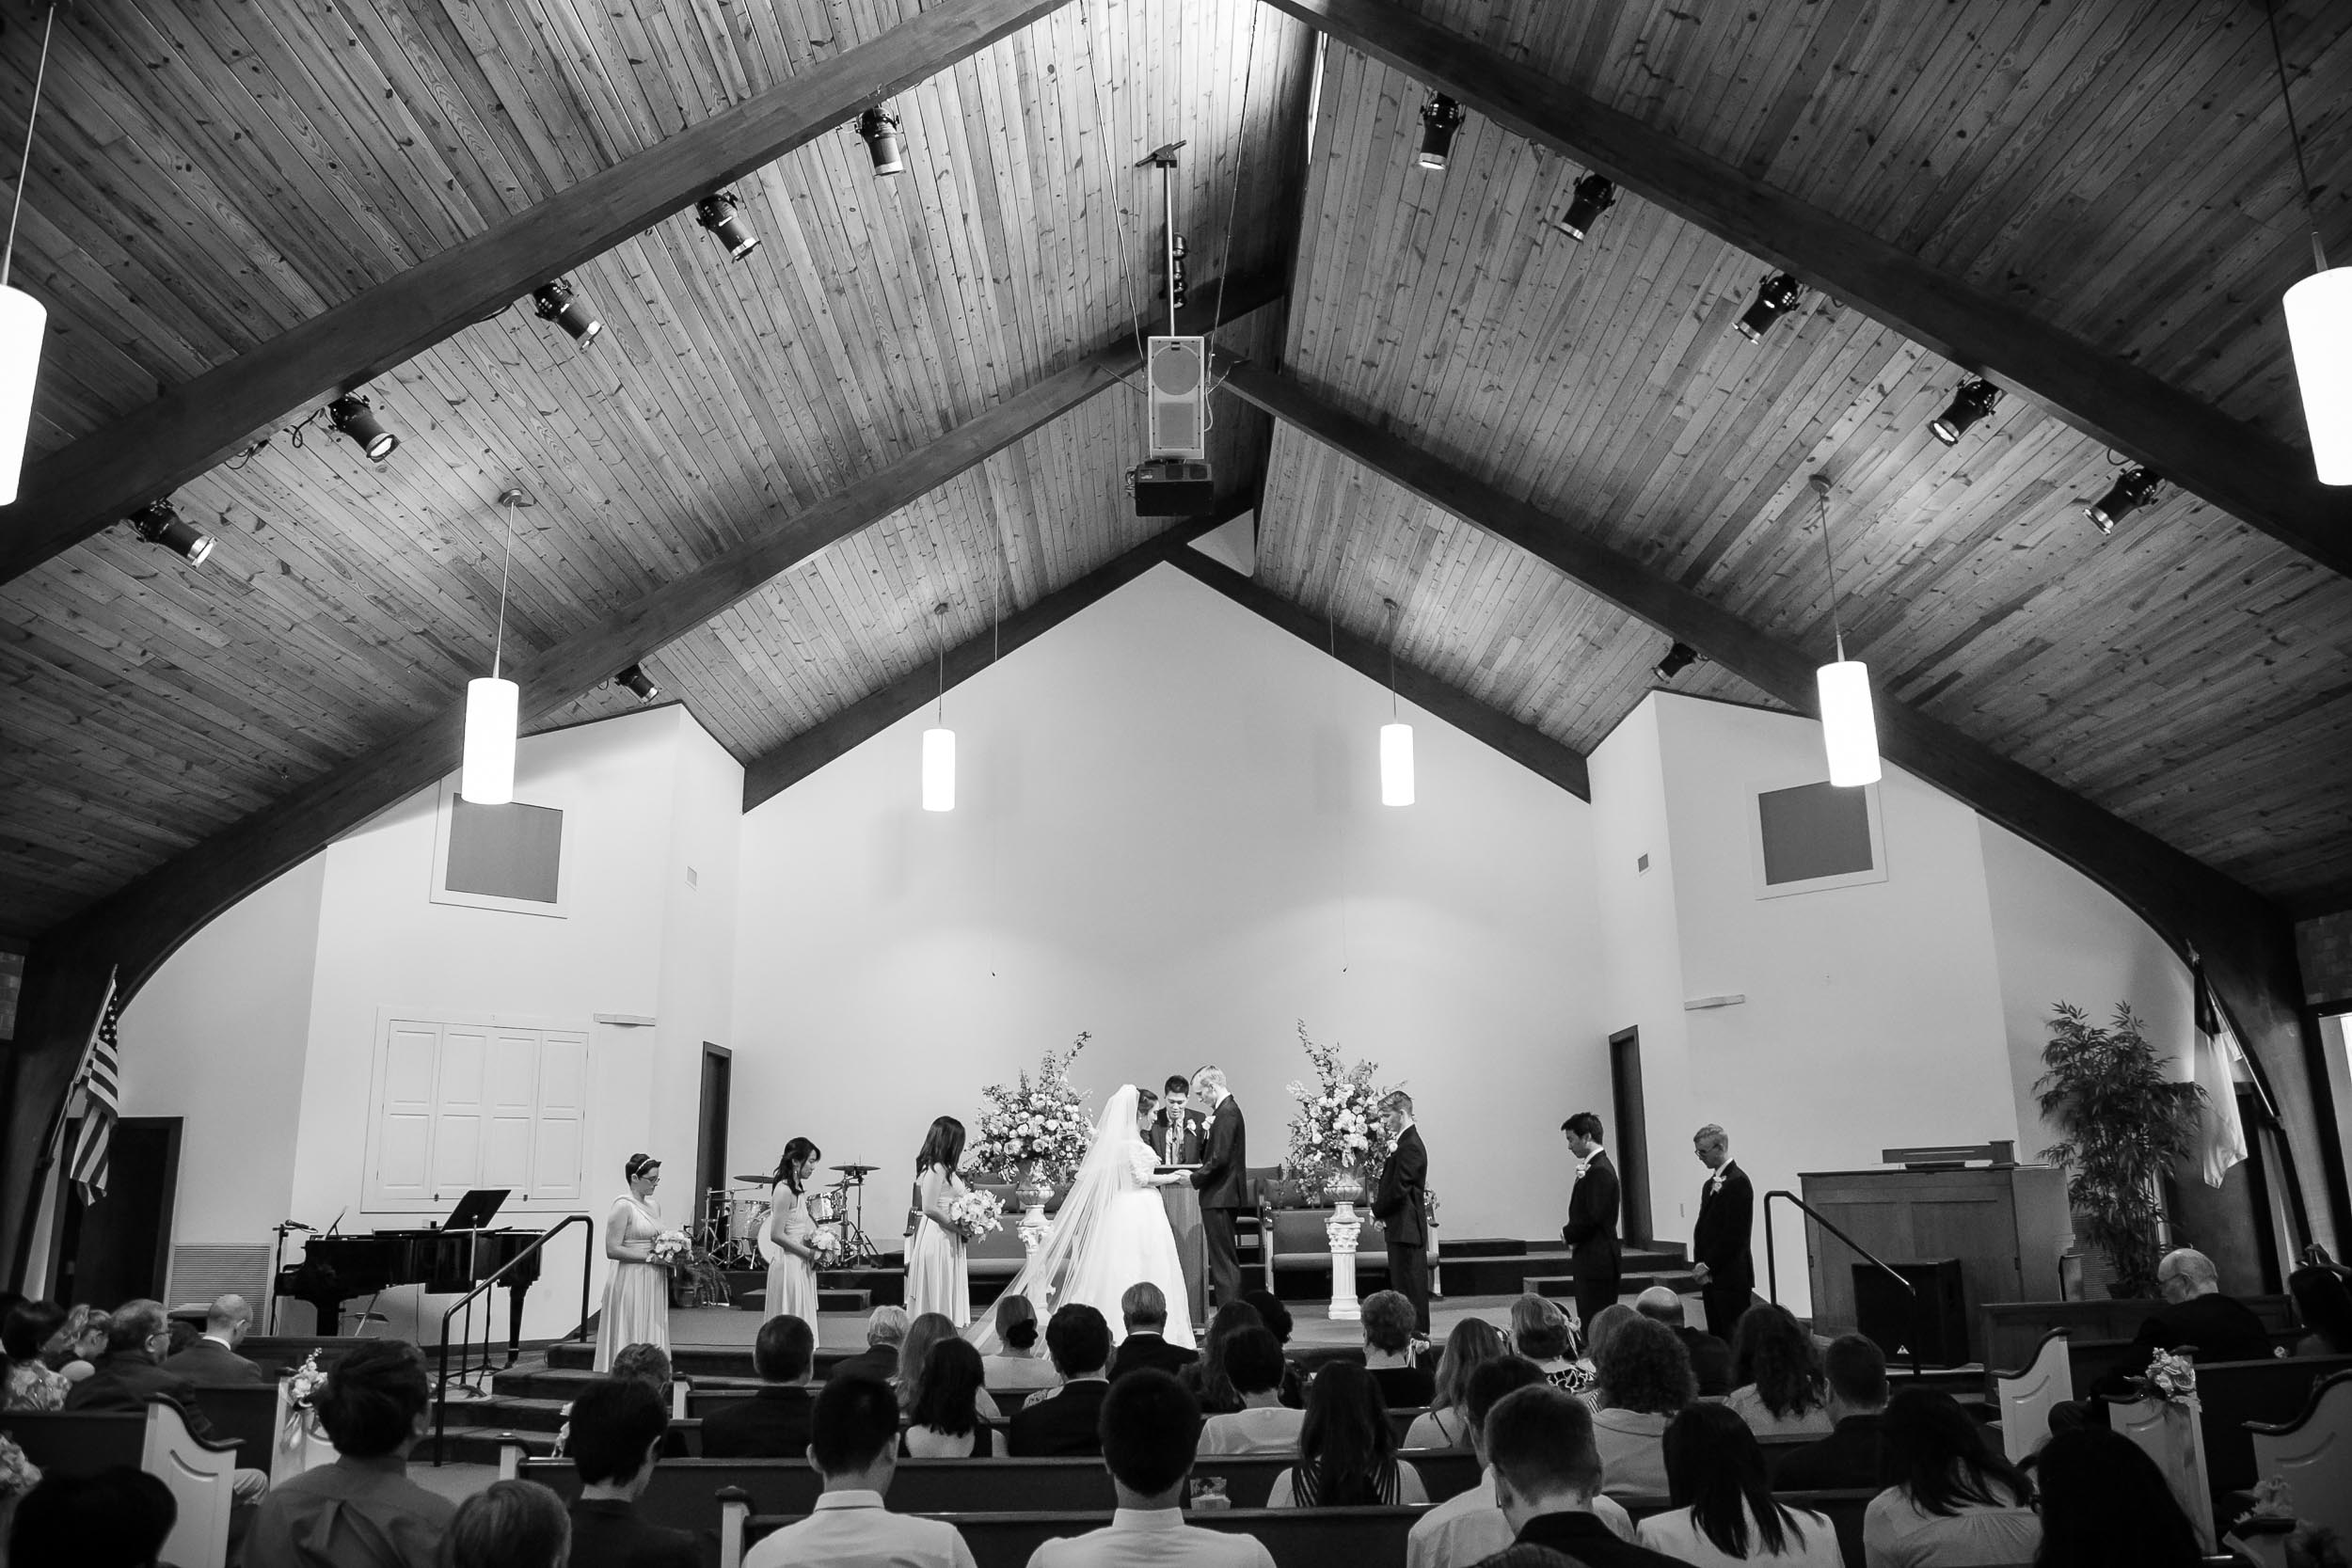 Campbell Lodge Wedding Photography | G. Lin Photography | Wide shot of church during wedding ceremony